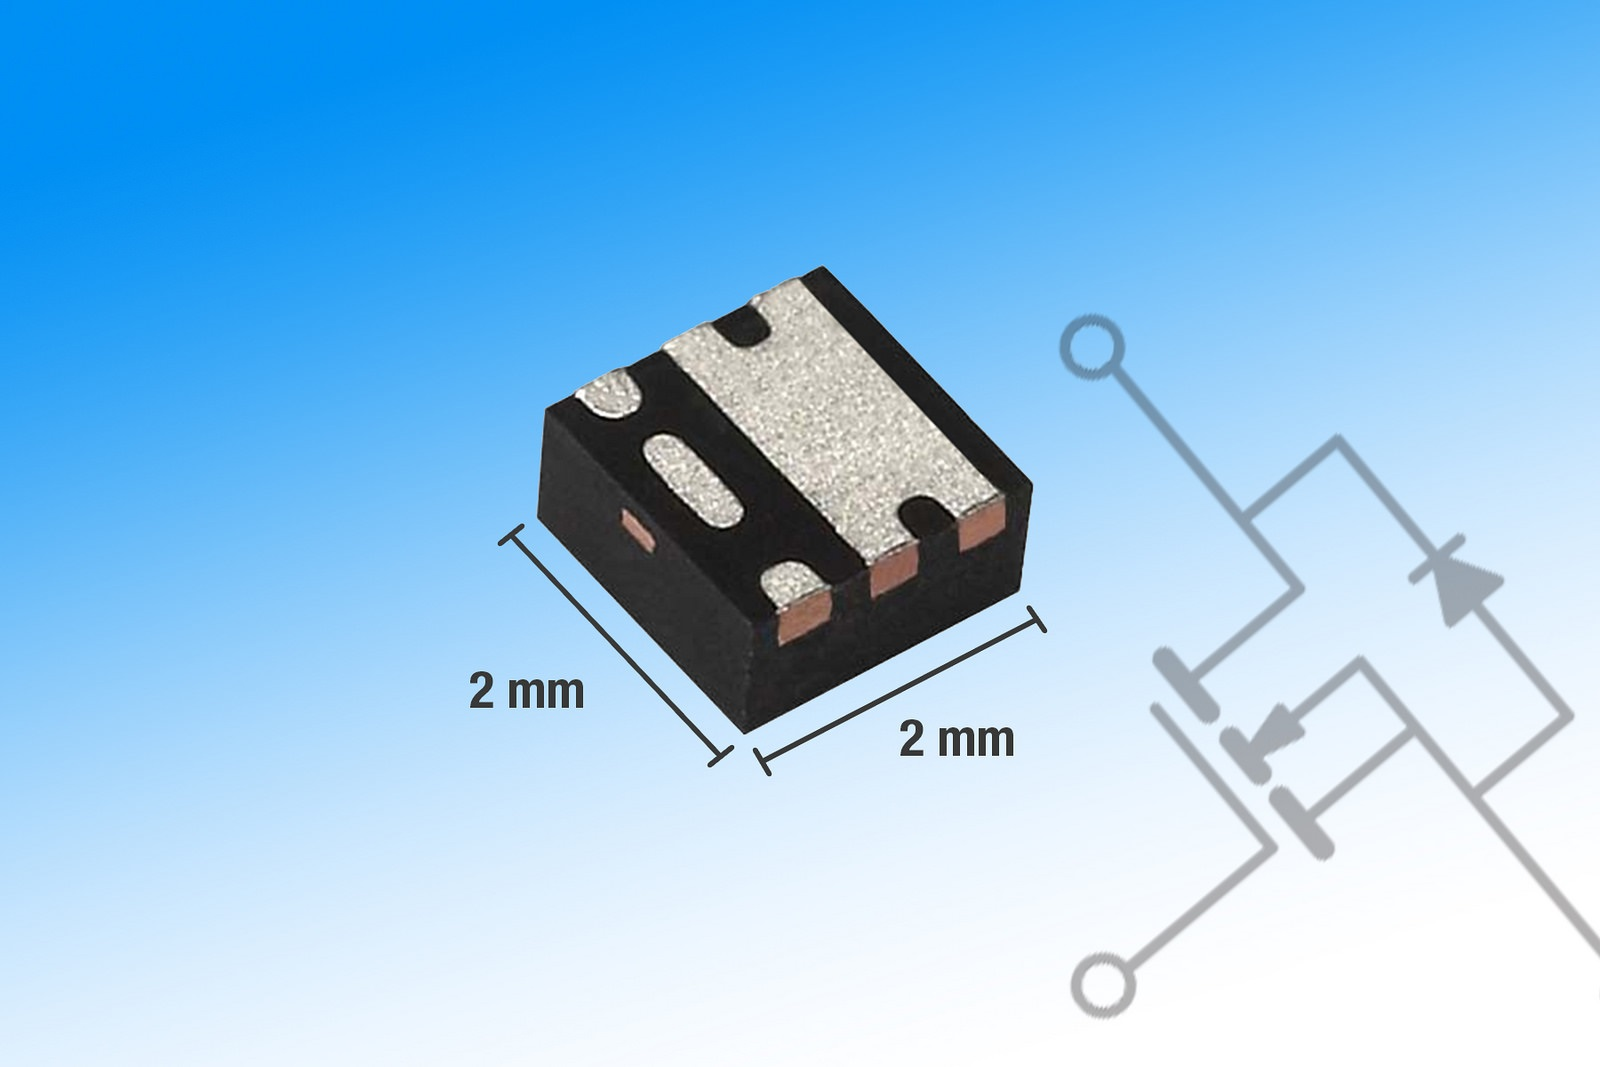 Pcim 2014 Power Mosfet Fits Small Pcb Footprint Solid State Relay Vishay 30v Adds To Efficiency Of Mobile Devices